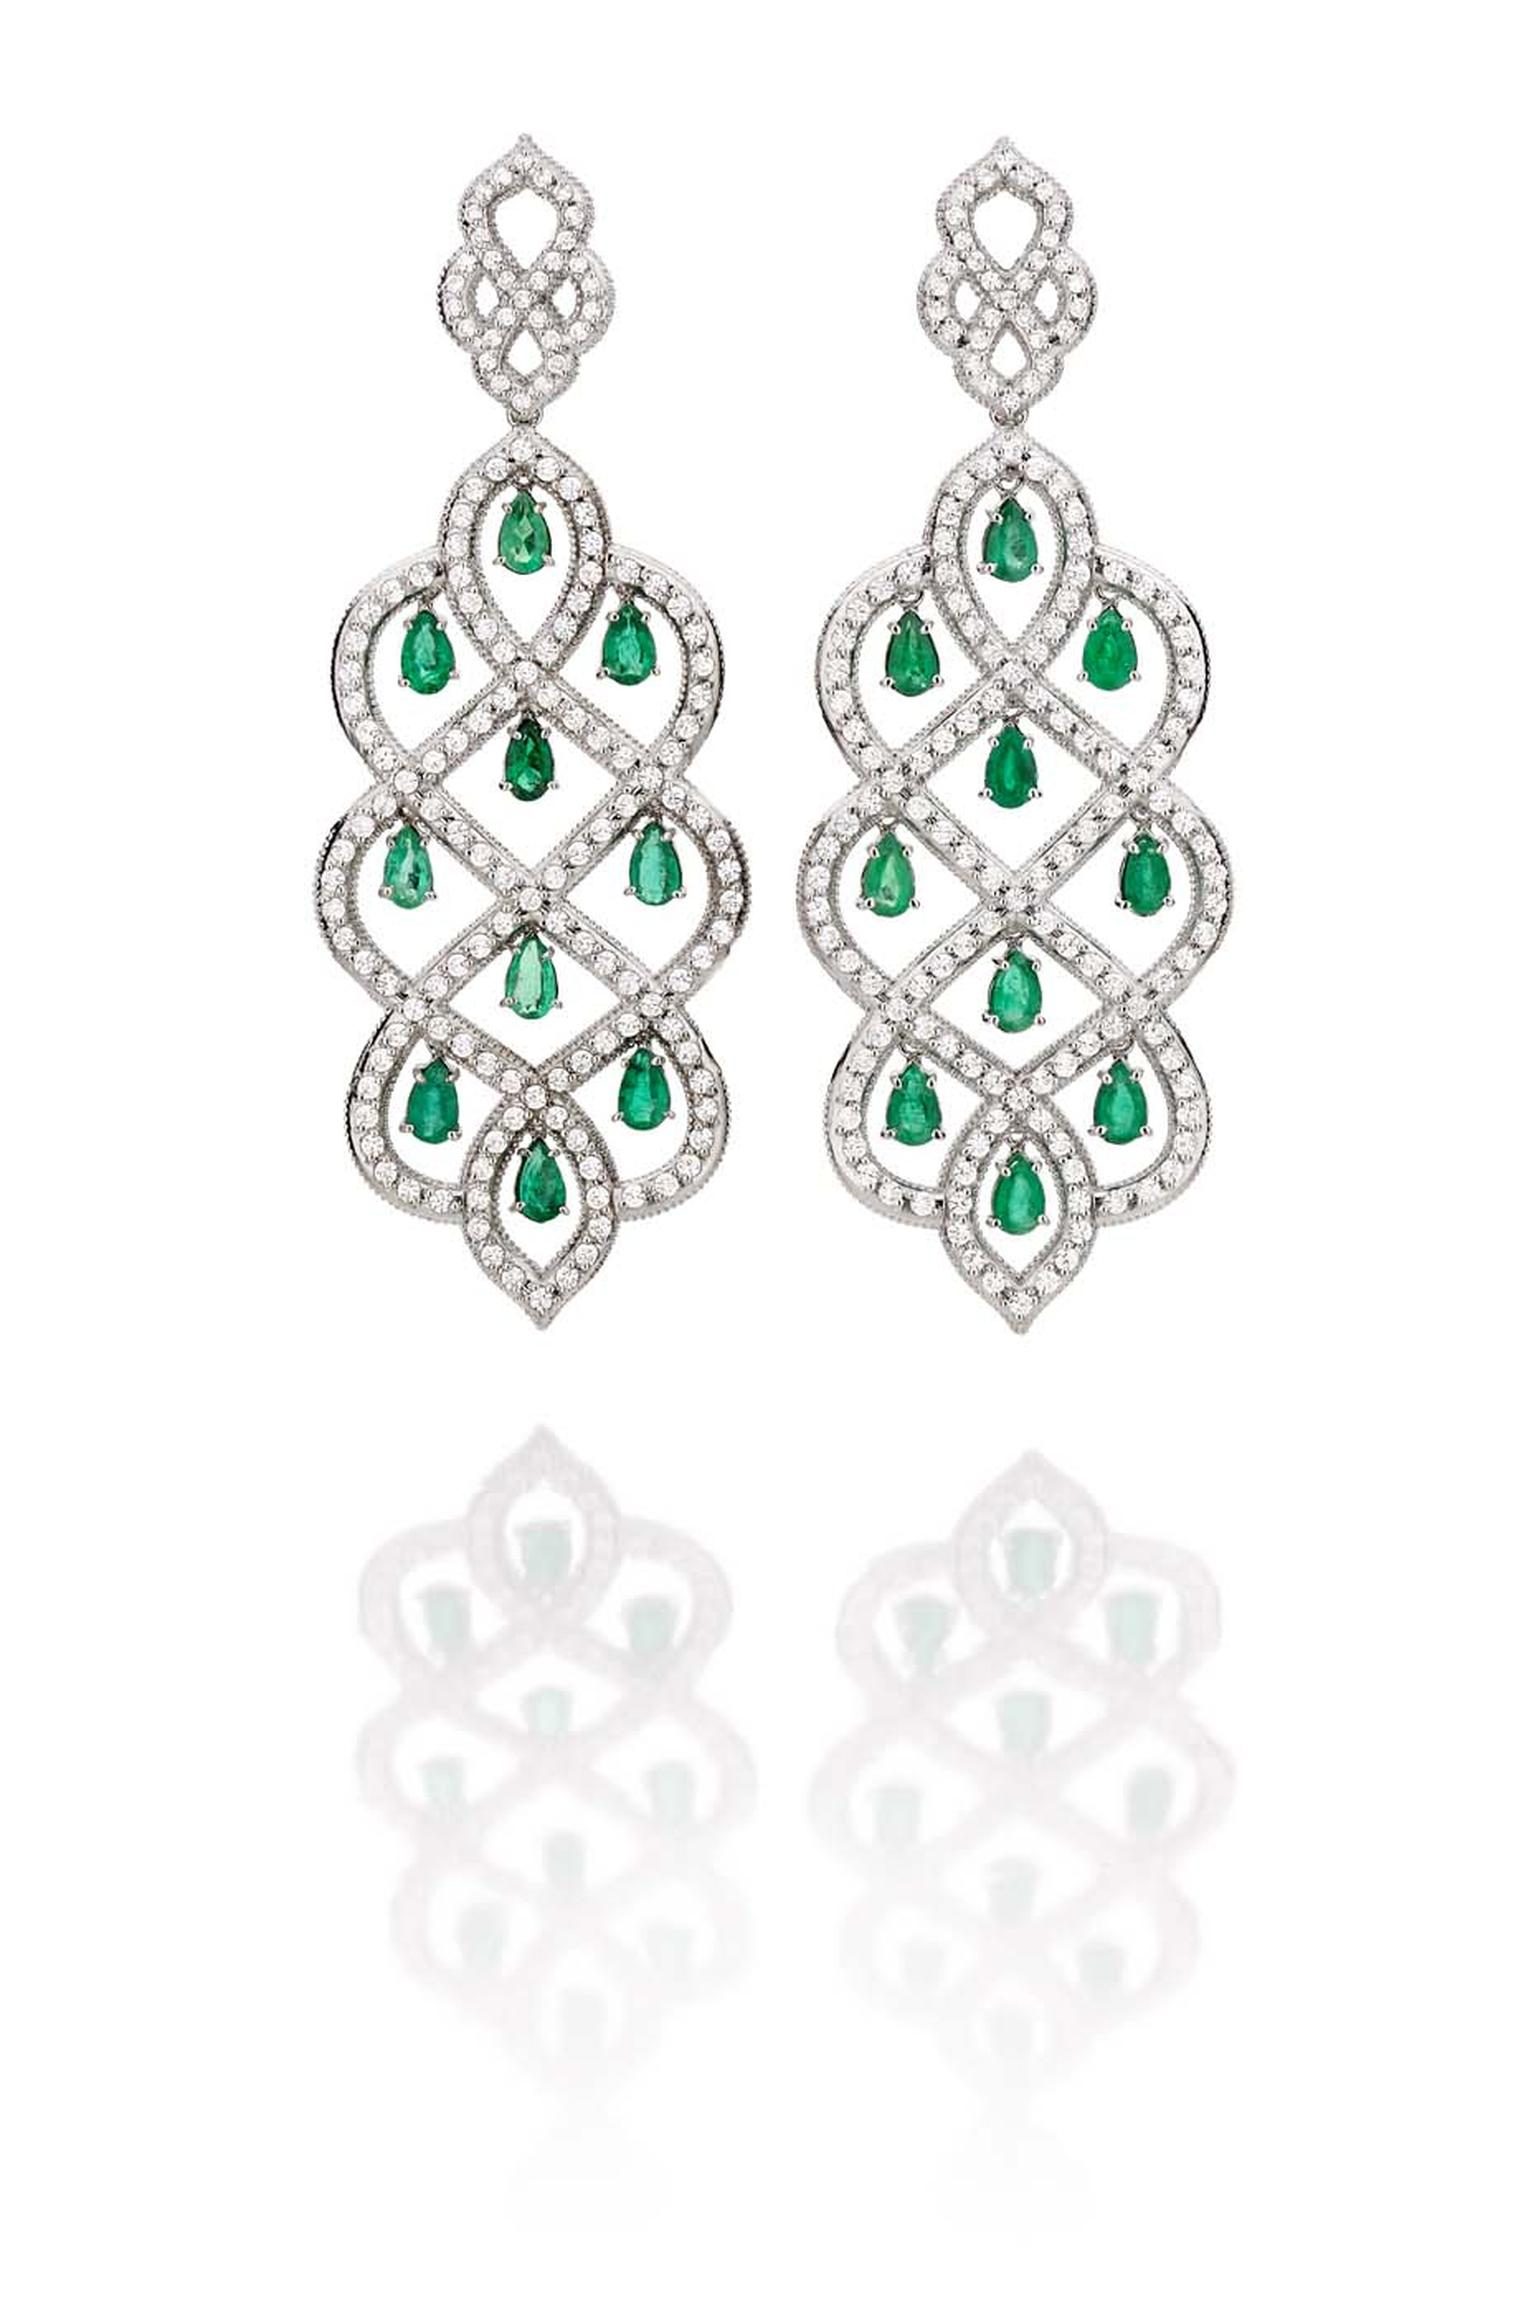 Carla Amorim Russia Collection Taiga emerald earrings, inspired by the Russian Boreal forests